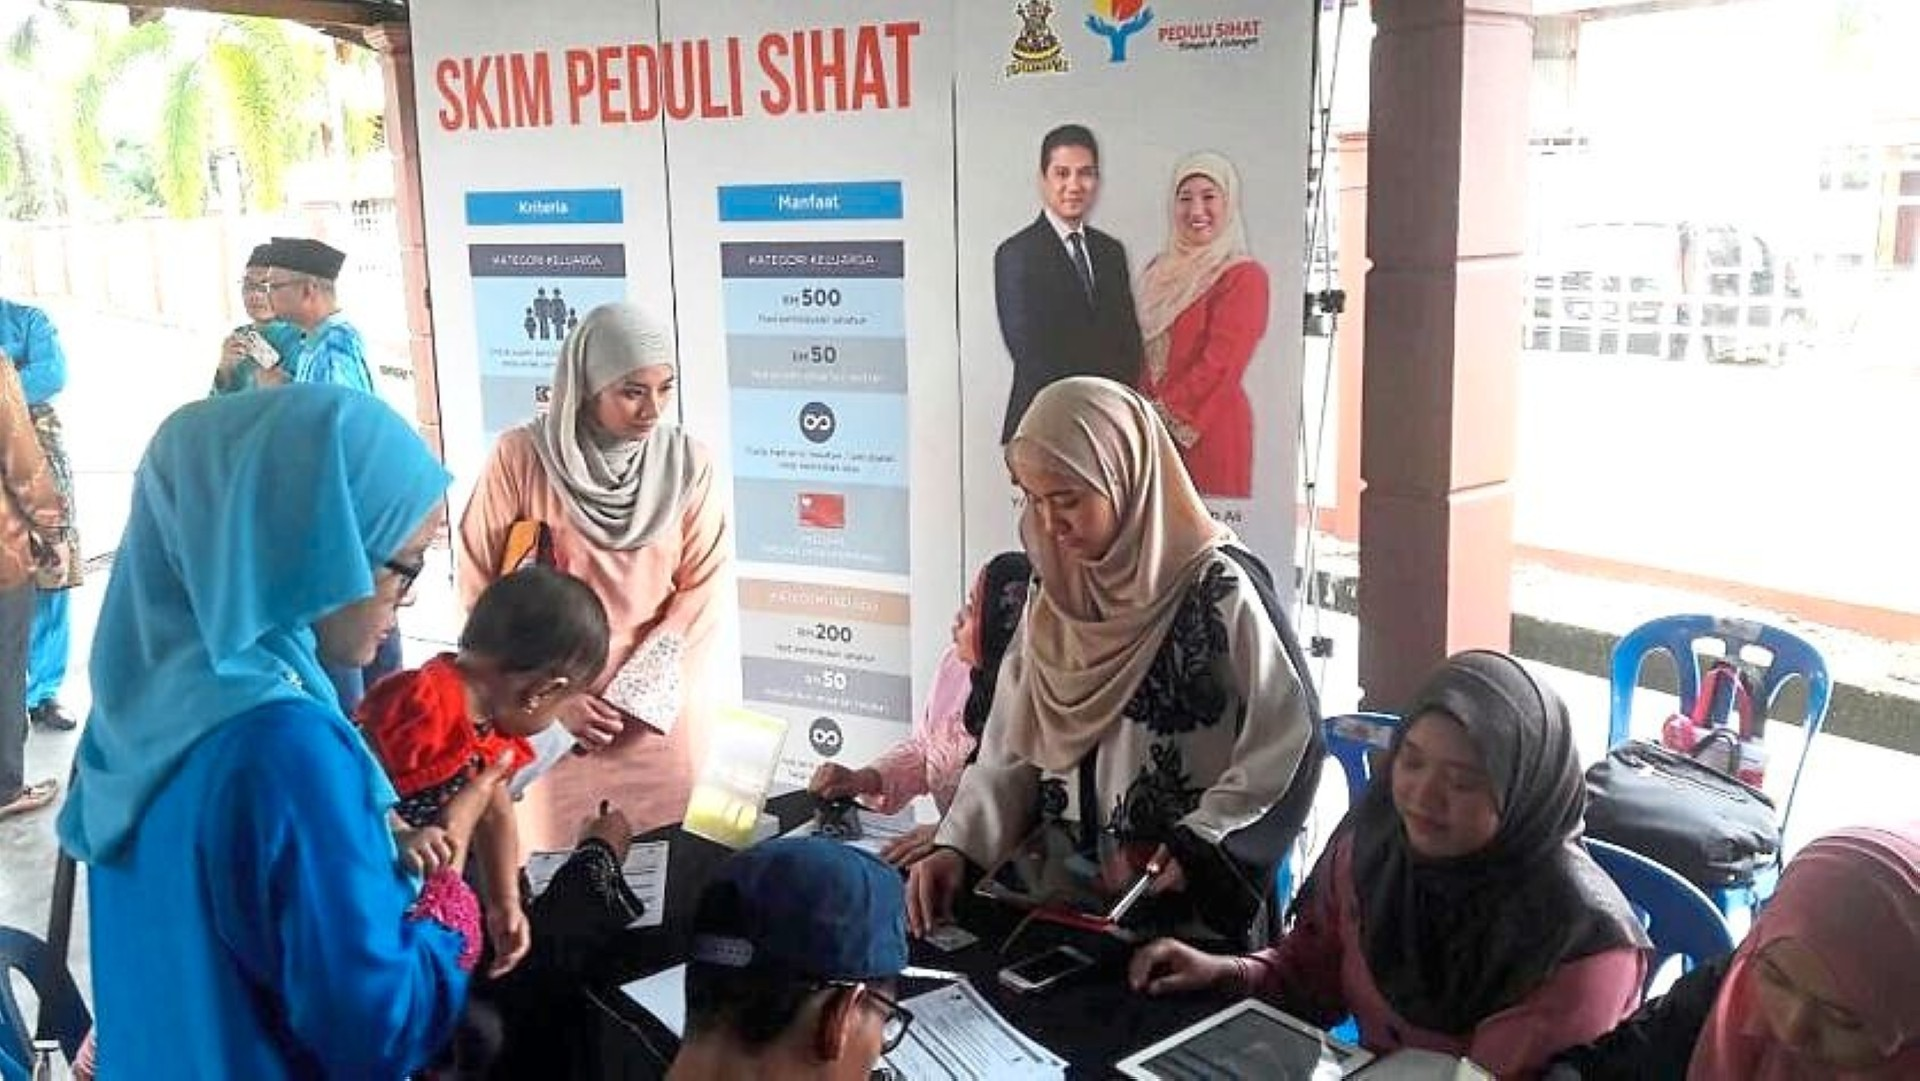 Recipients of the Peduli Sihat scheme have increased to 85,000. — Filepic